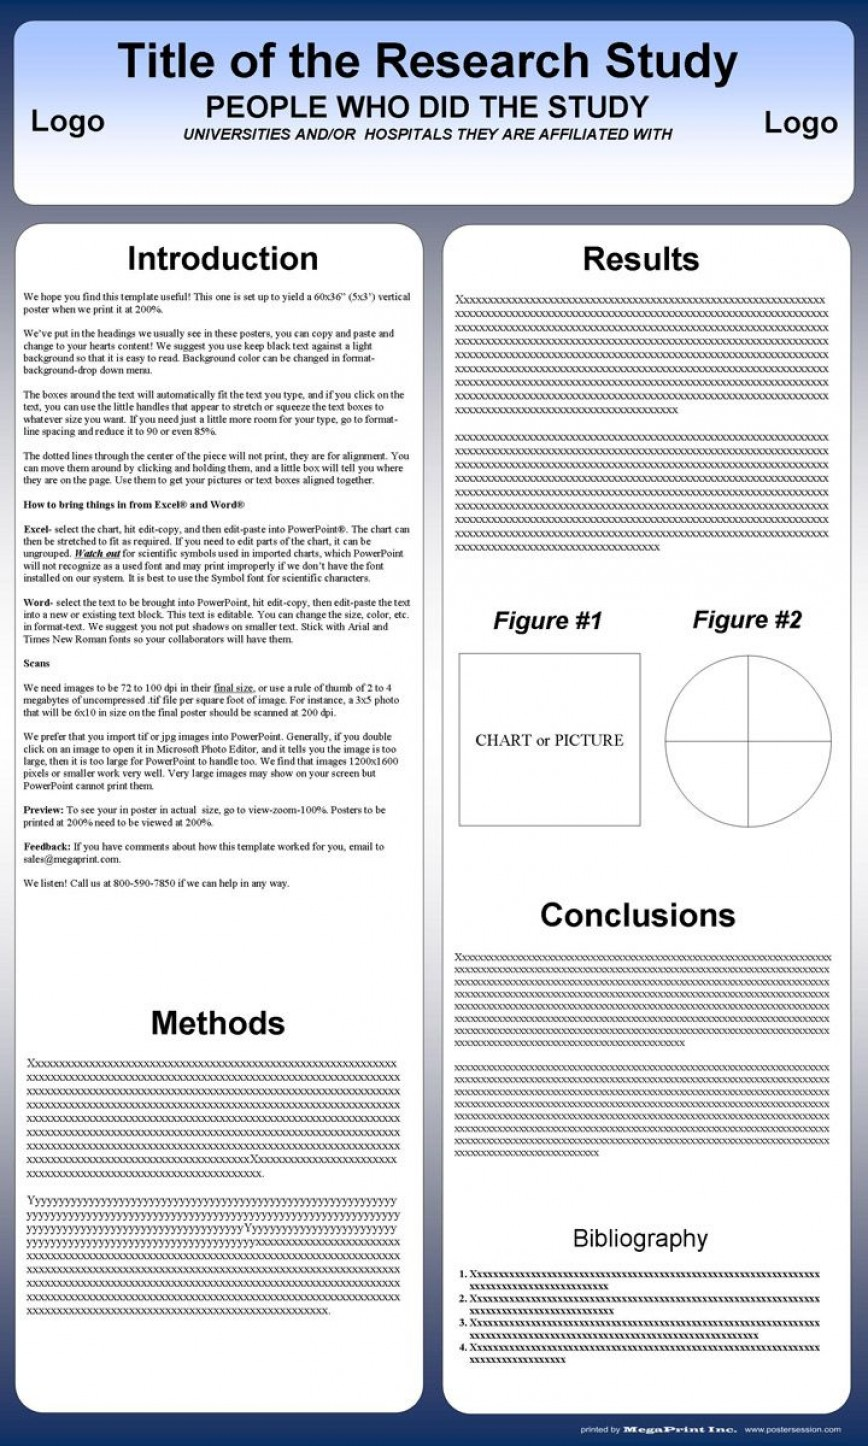 001 Incredible Scientific Poster Template A1 Free Download Example